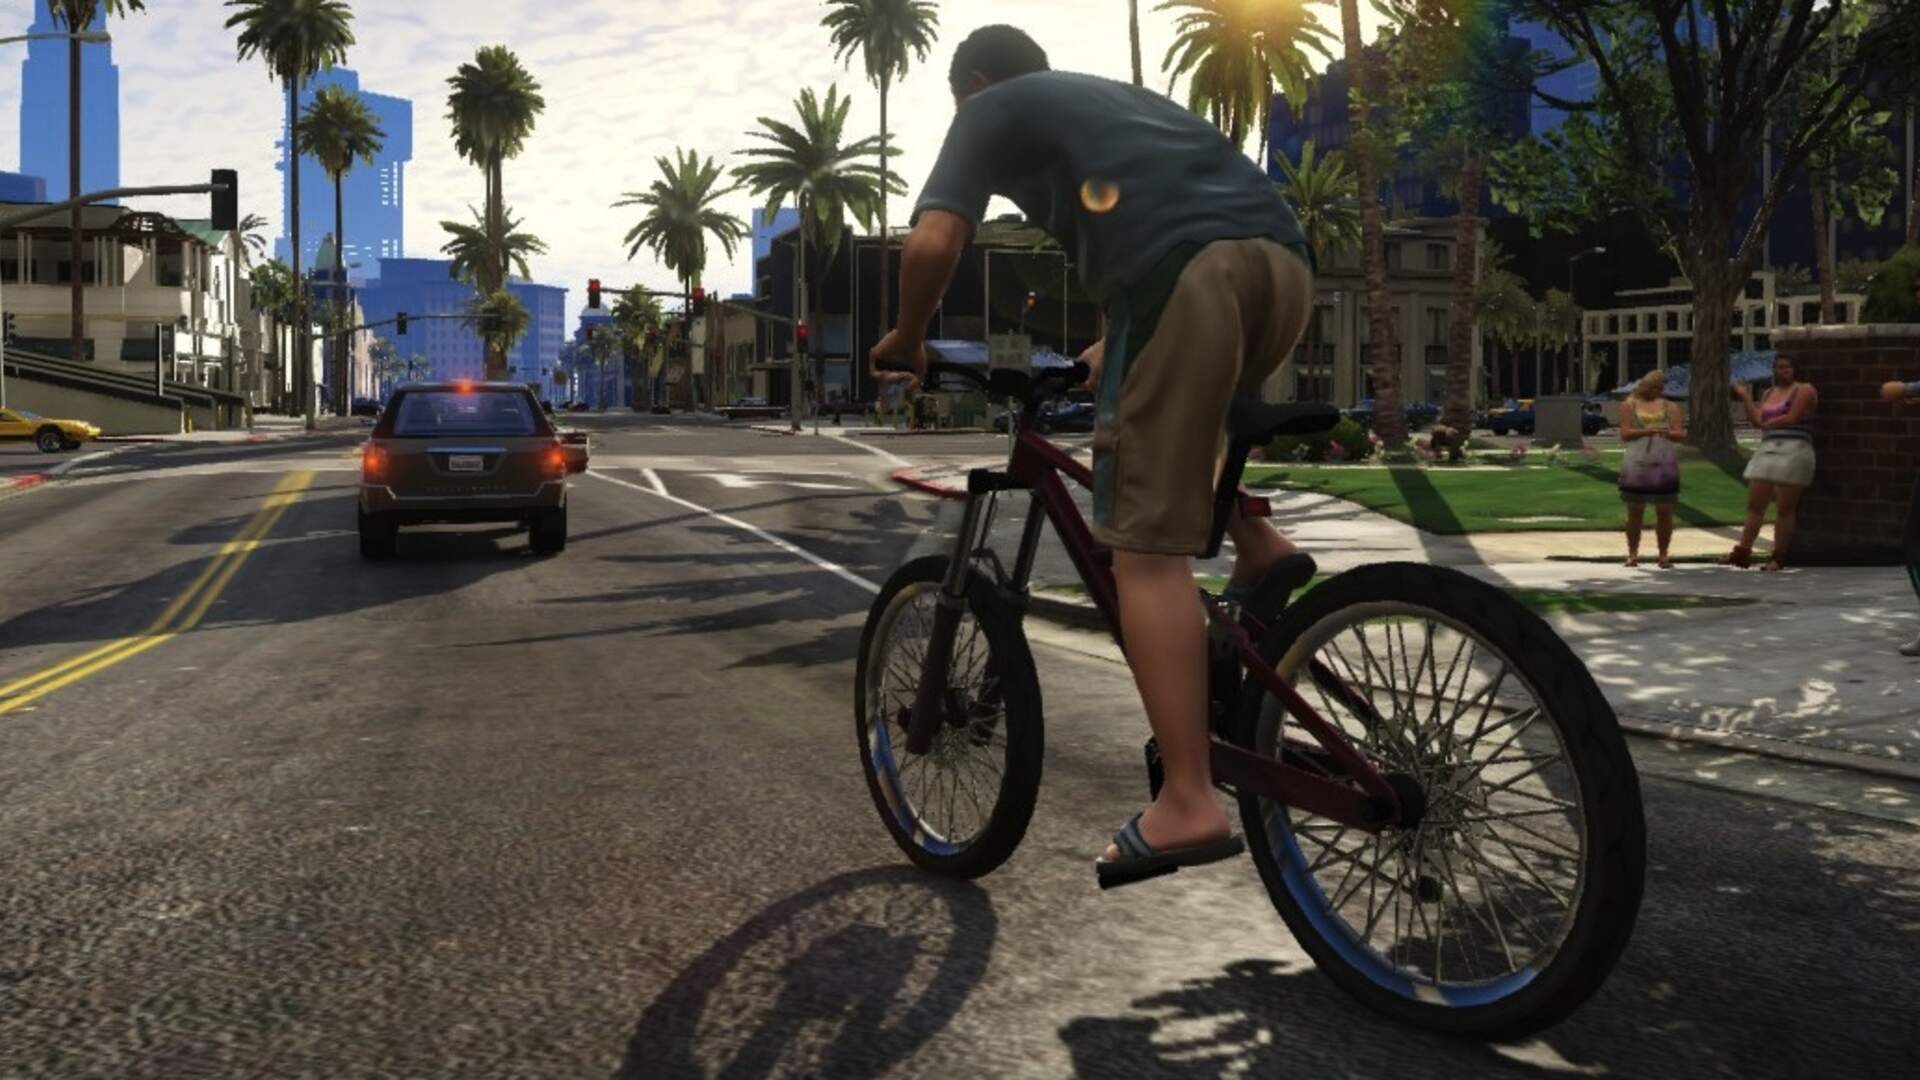 GTA Online's Content Creator Leaked in New Videos